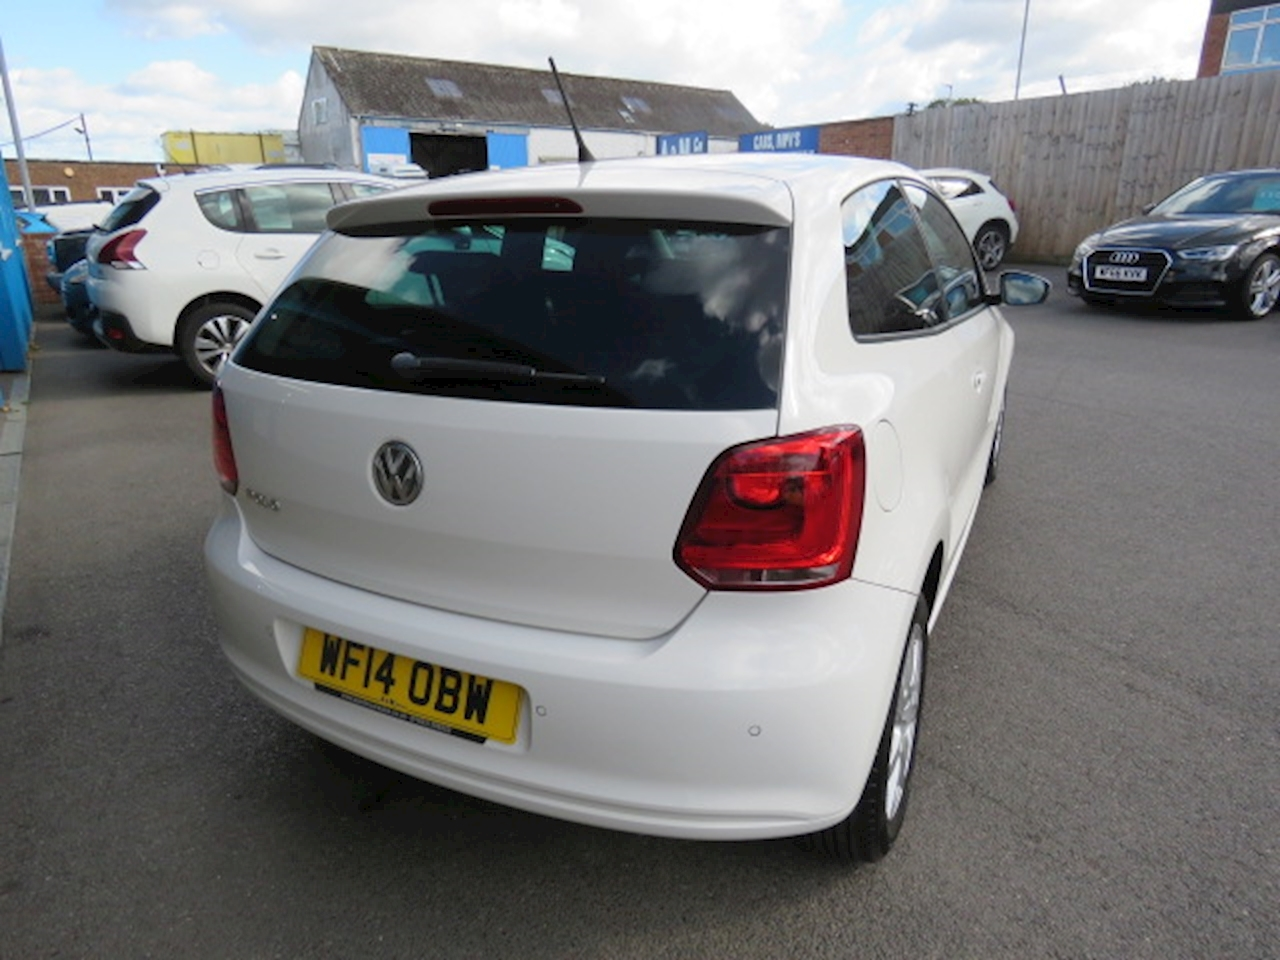 Volkswagen Polo Match Edition 1.2 3dr Hatchback Manual Petrol